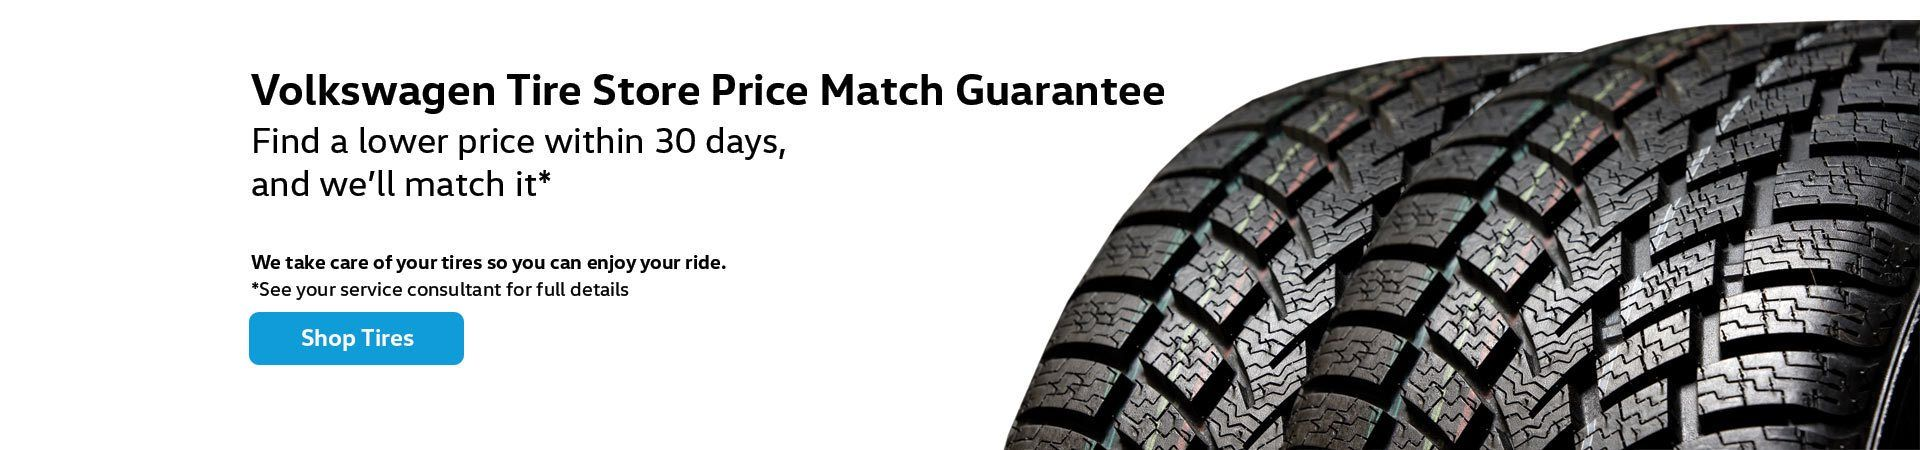 tucson volkswagen tire store price match guarantee